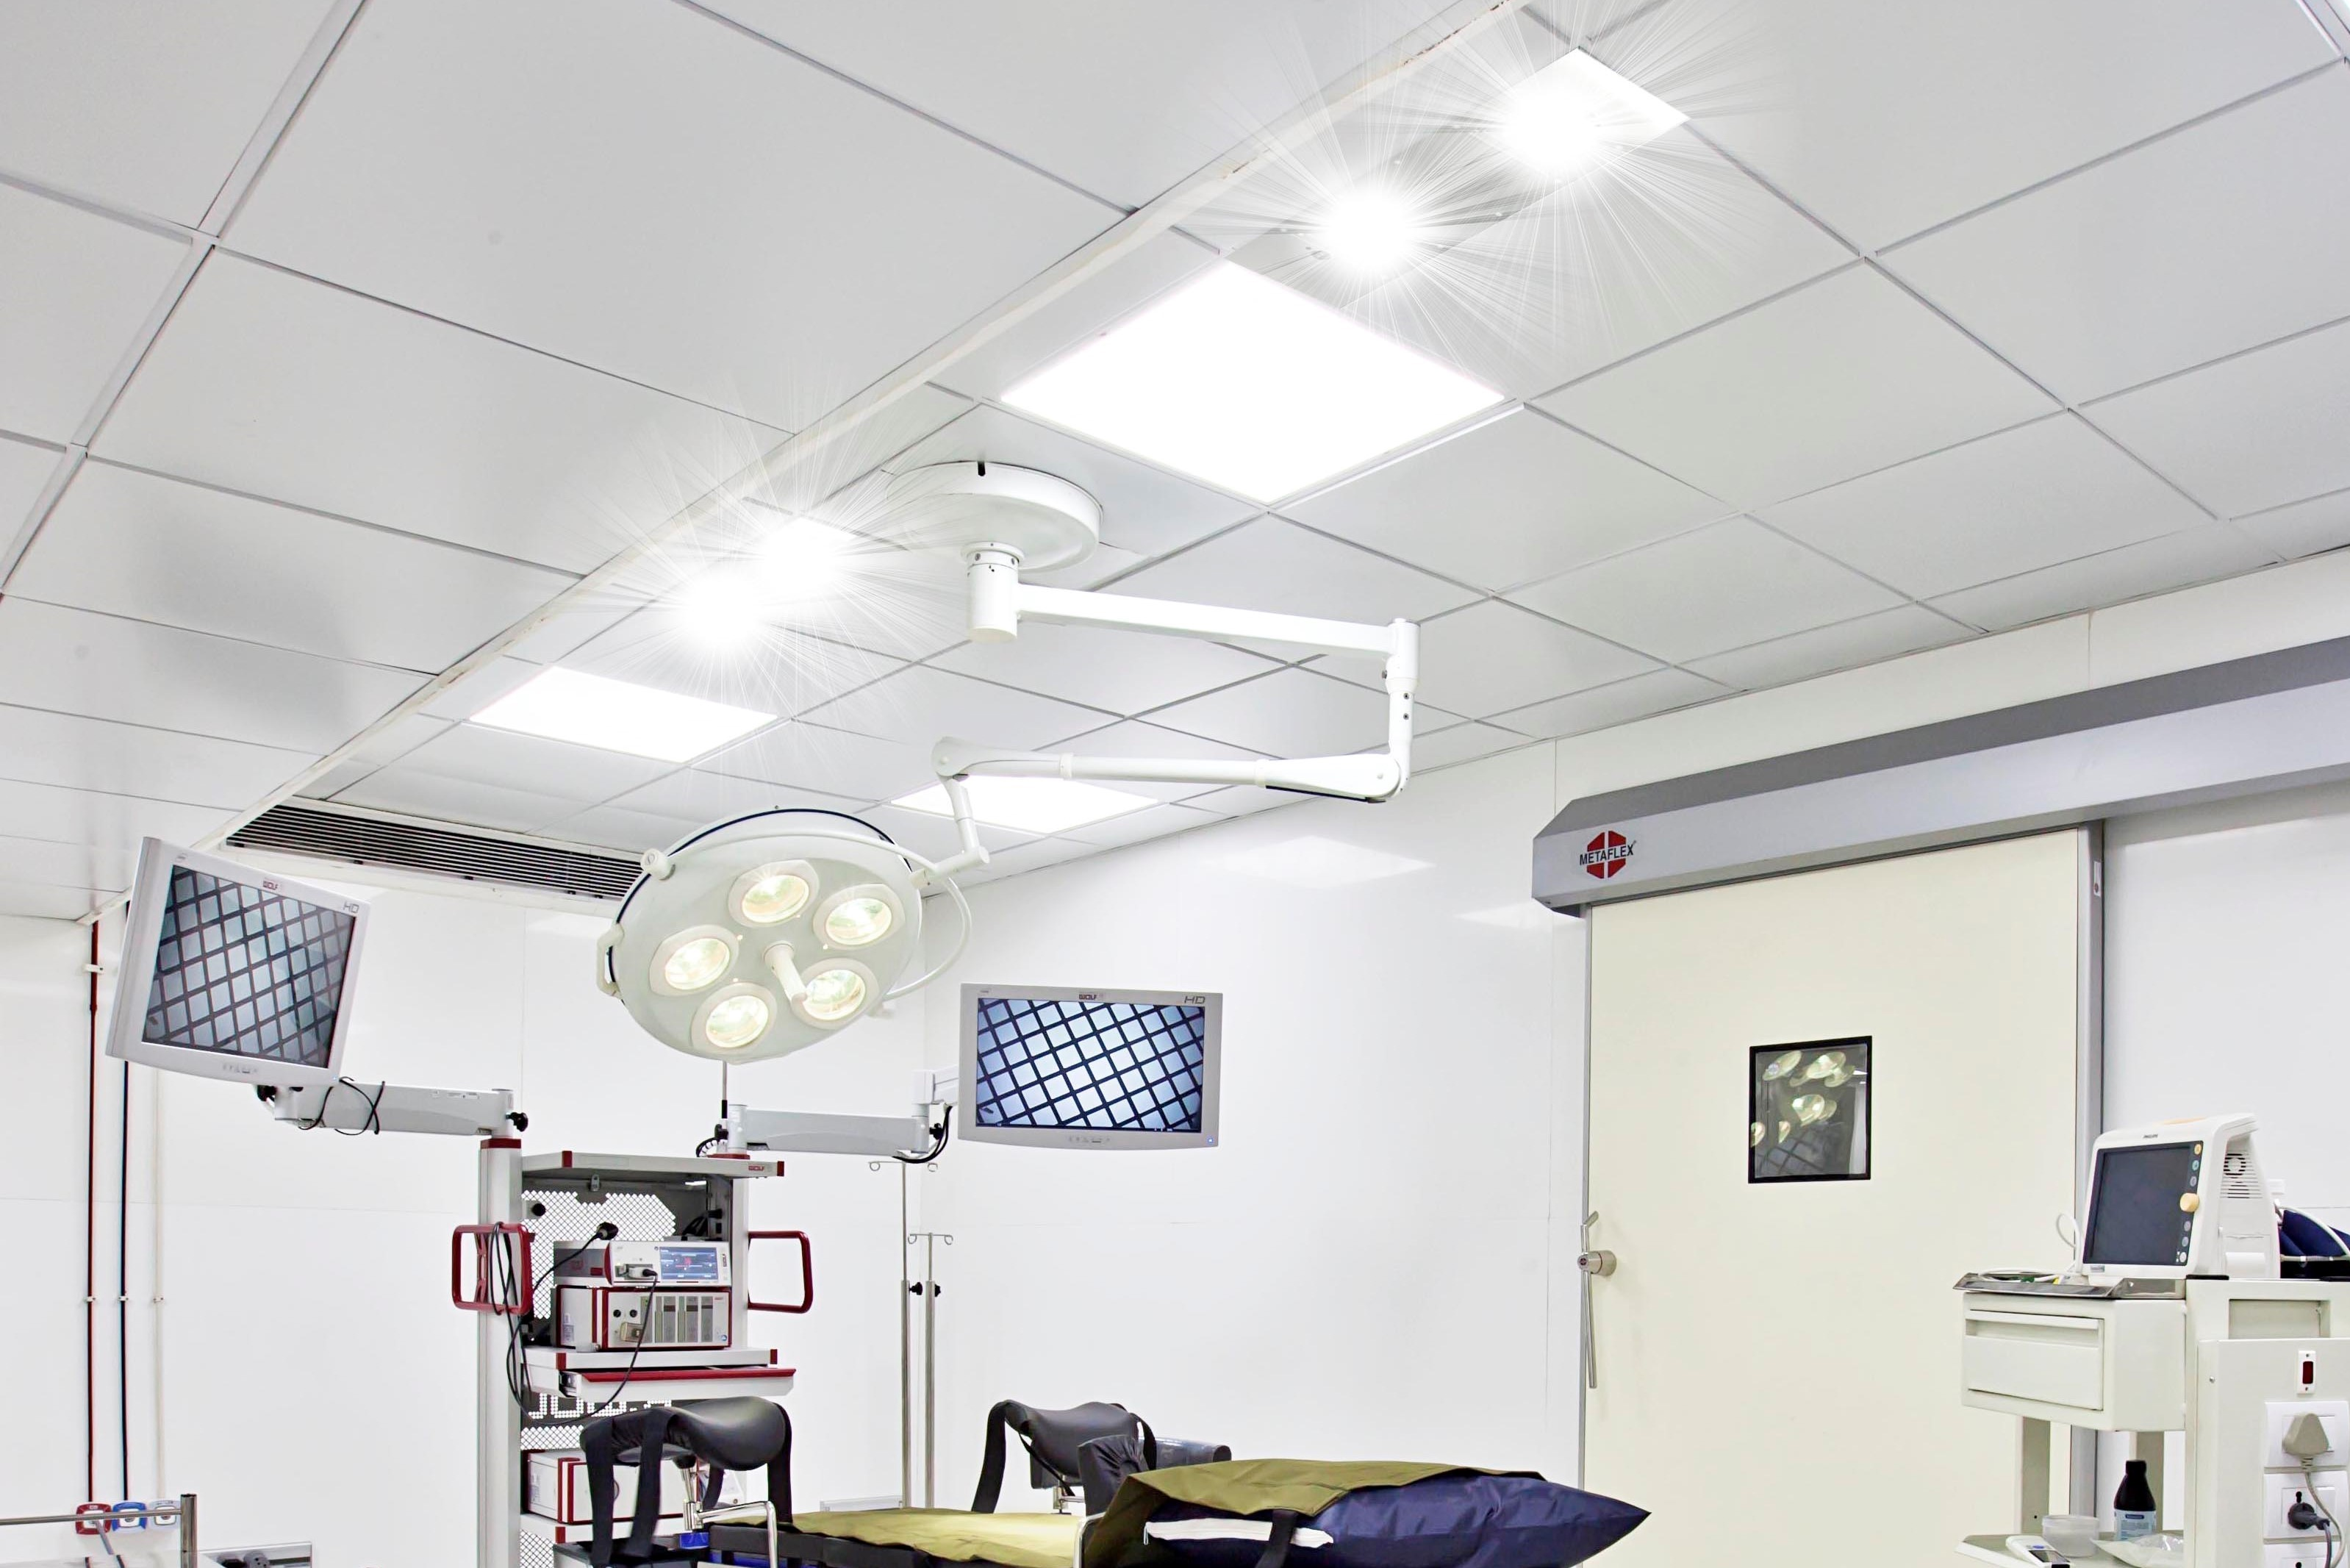 uv disinfection light hospital surgery